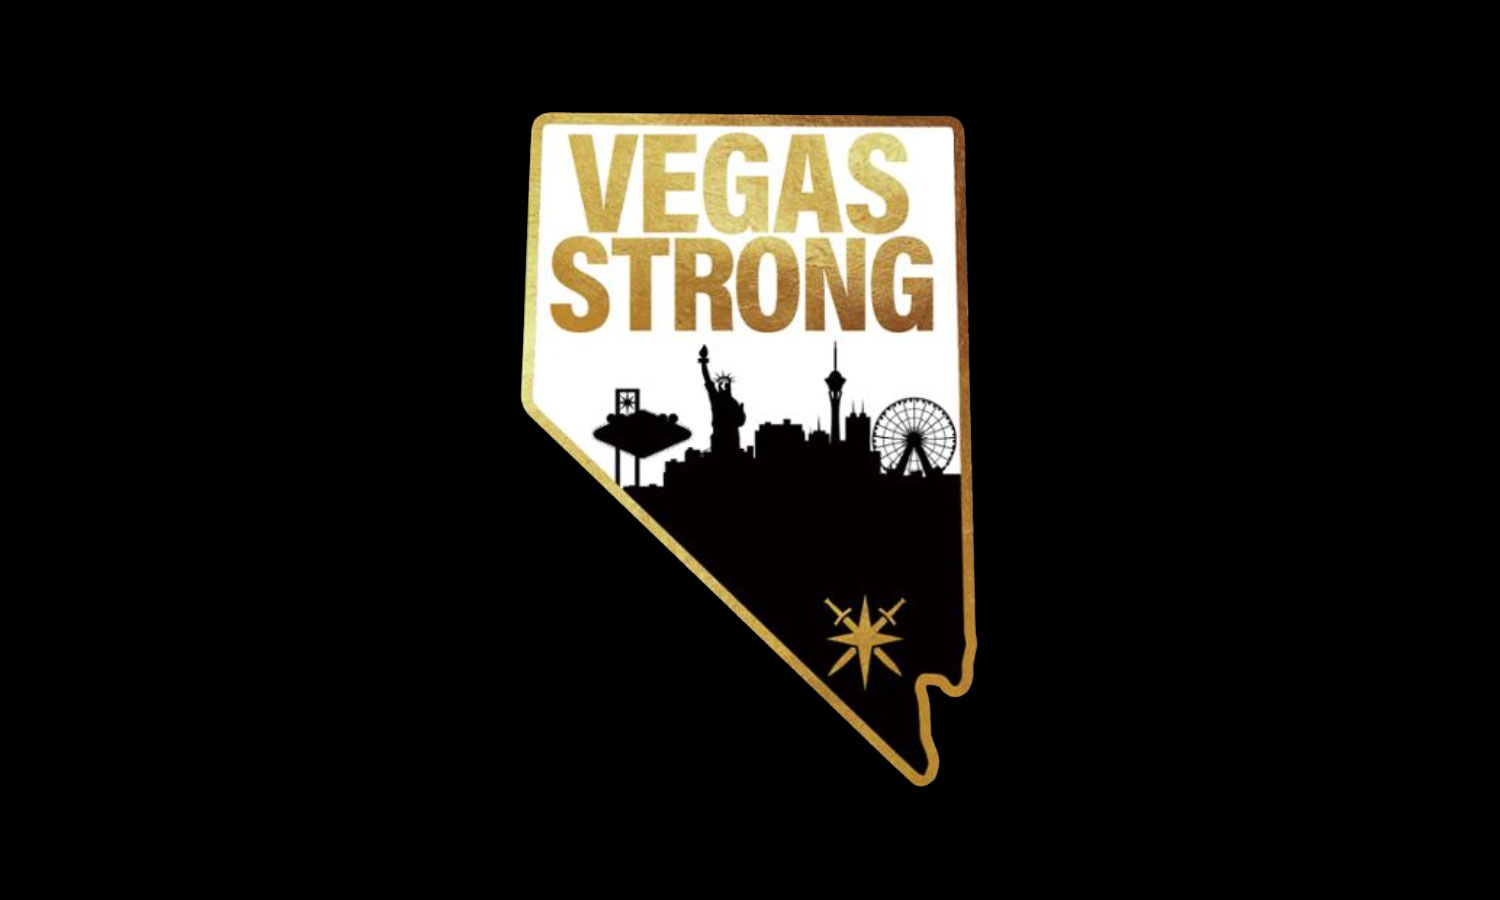 Tragedy in Las Vegas: The Photos recommendations